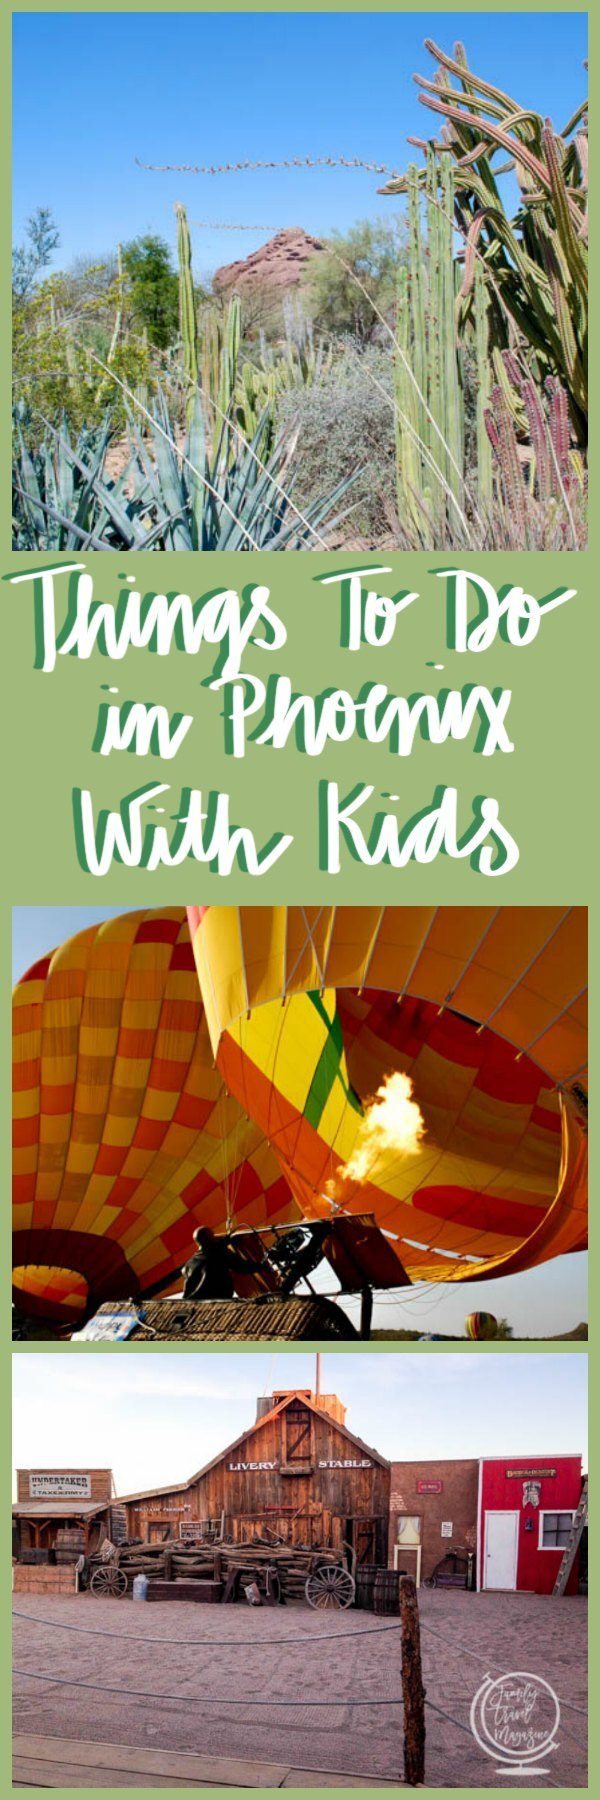 Things to do in Phoenix with kids including family activities in Tempe, Chandler, Scottsdale, and more.